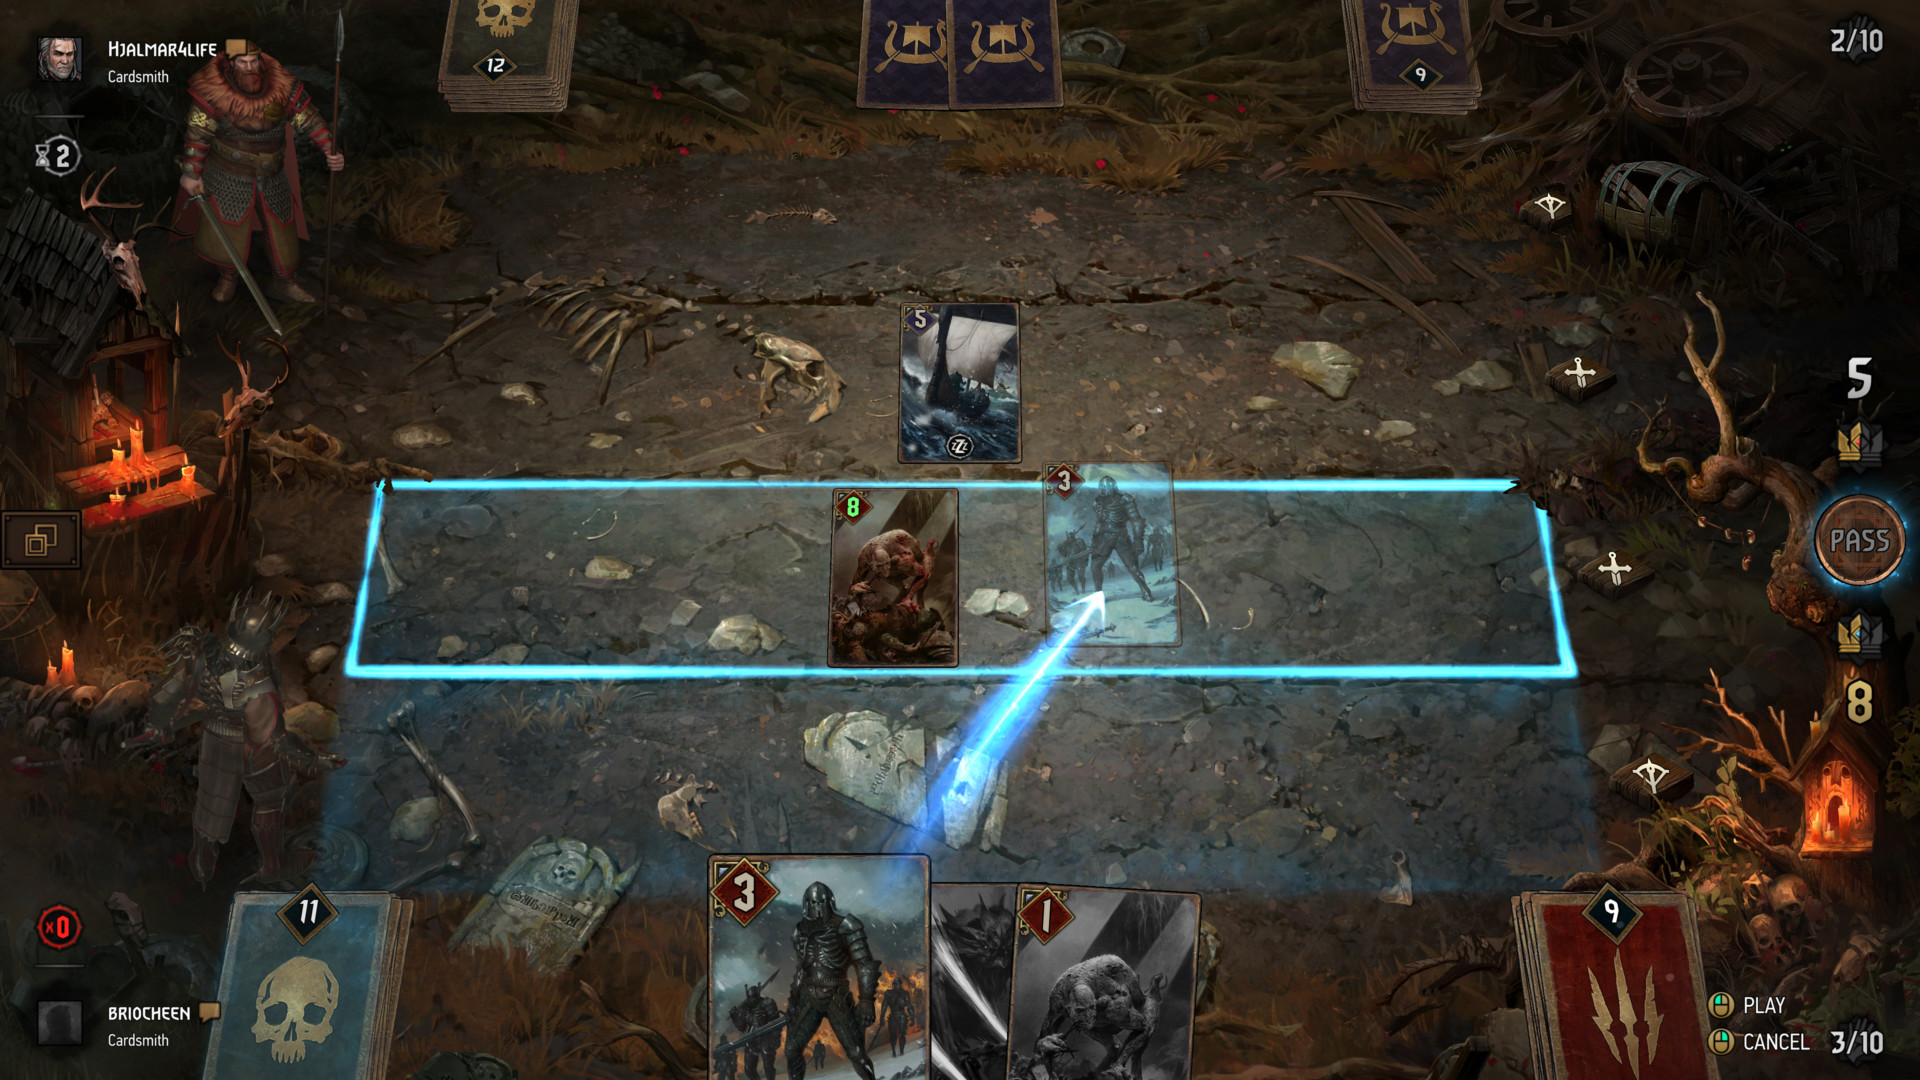 Play a card screenshot of Gwent: The Witcher Card Game video game interface.